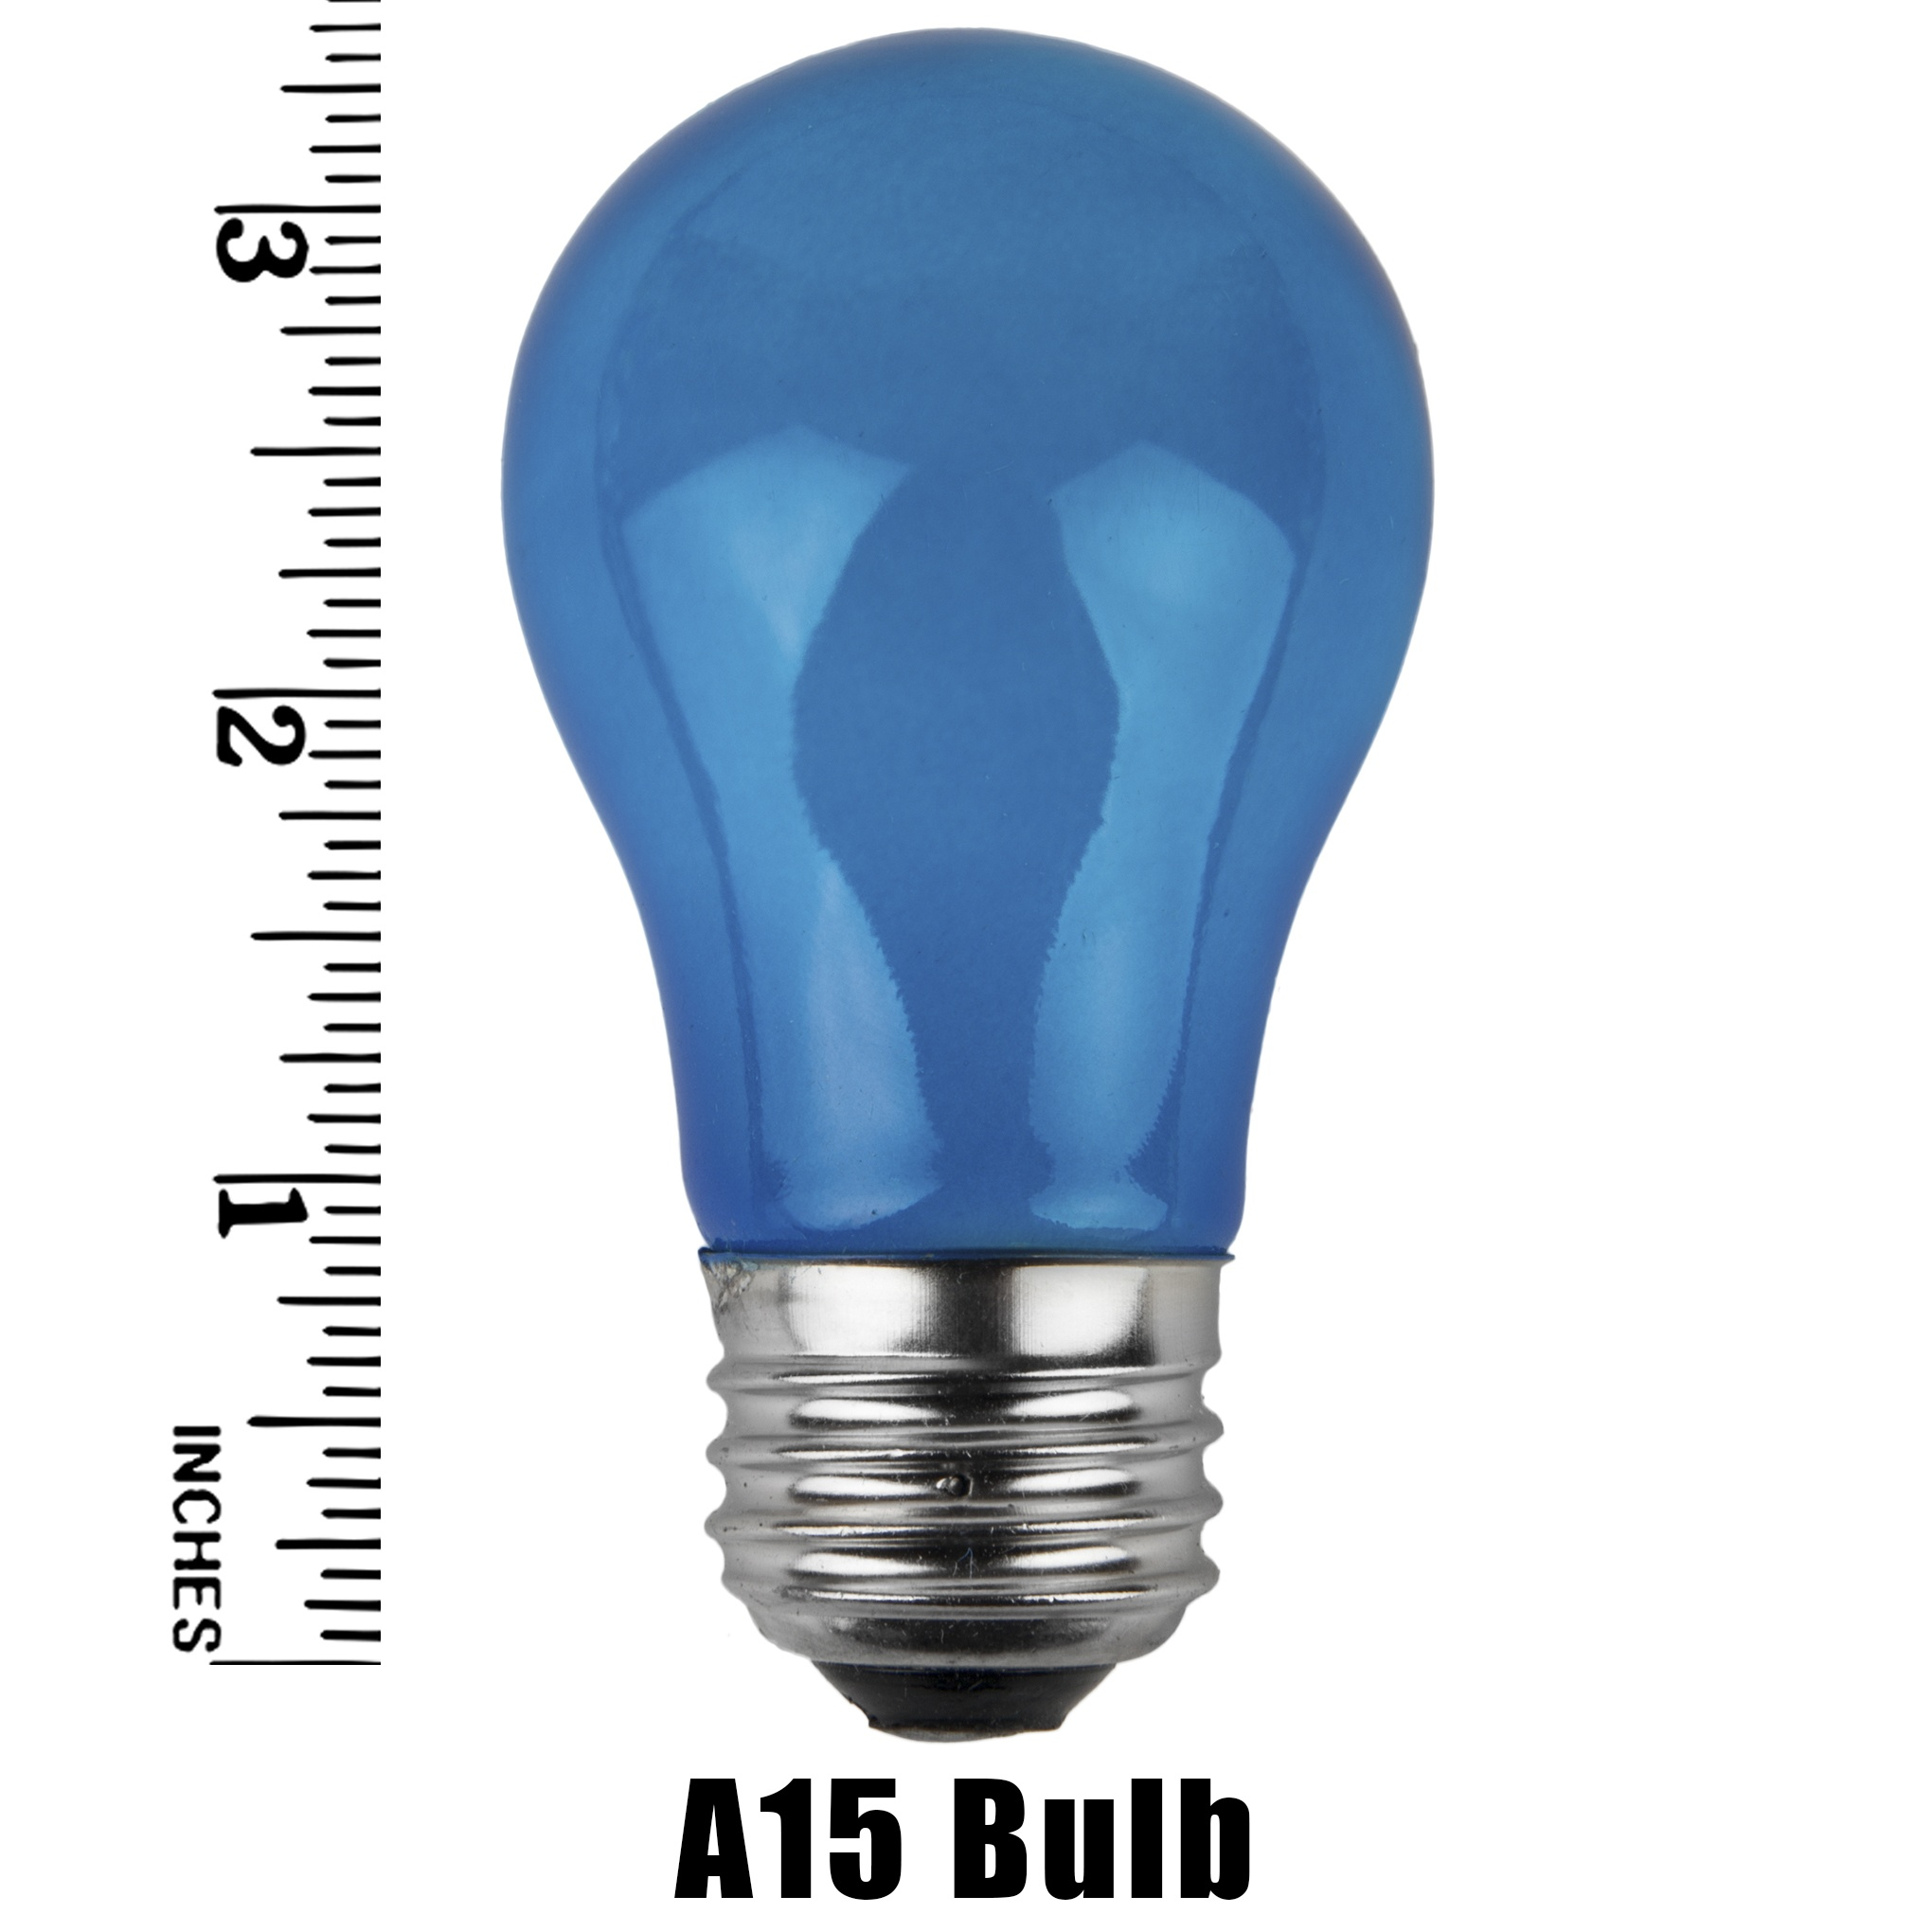 A15 Muliticolored Opaque Incandescent Bulb Measurement